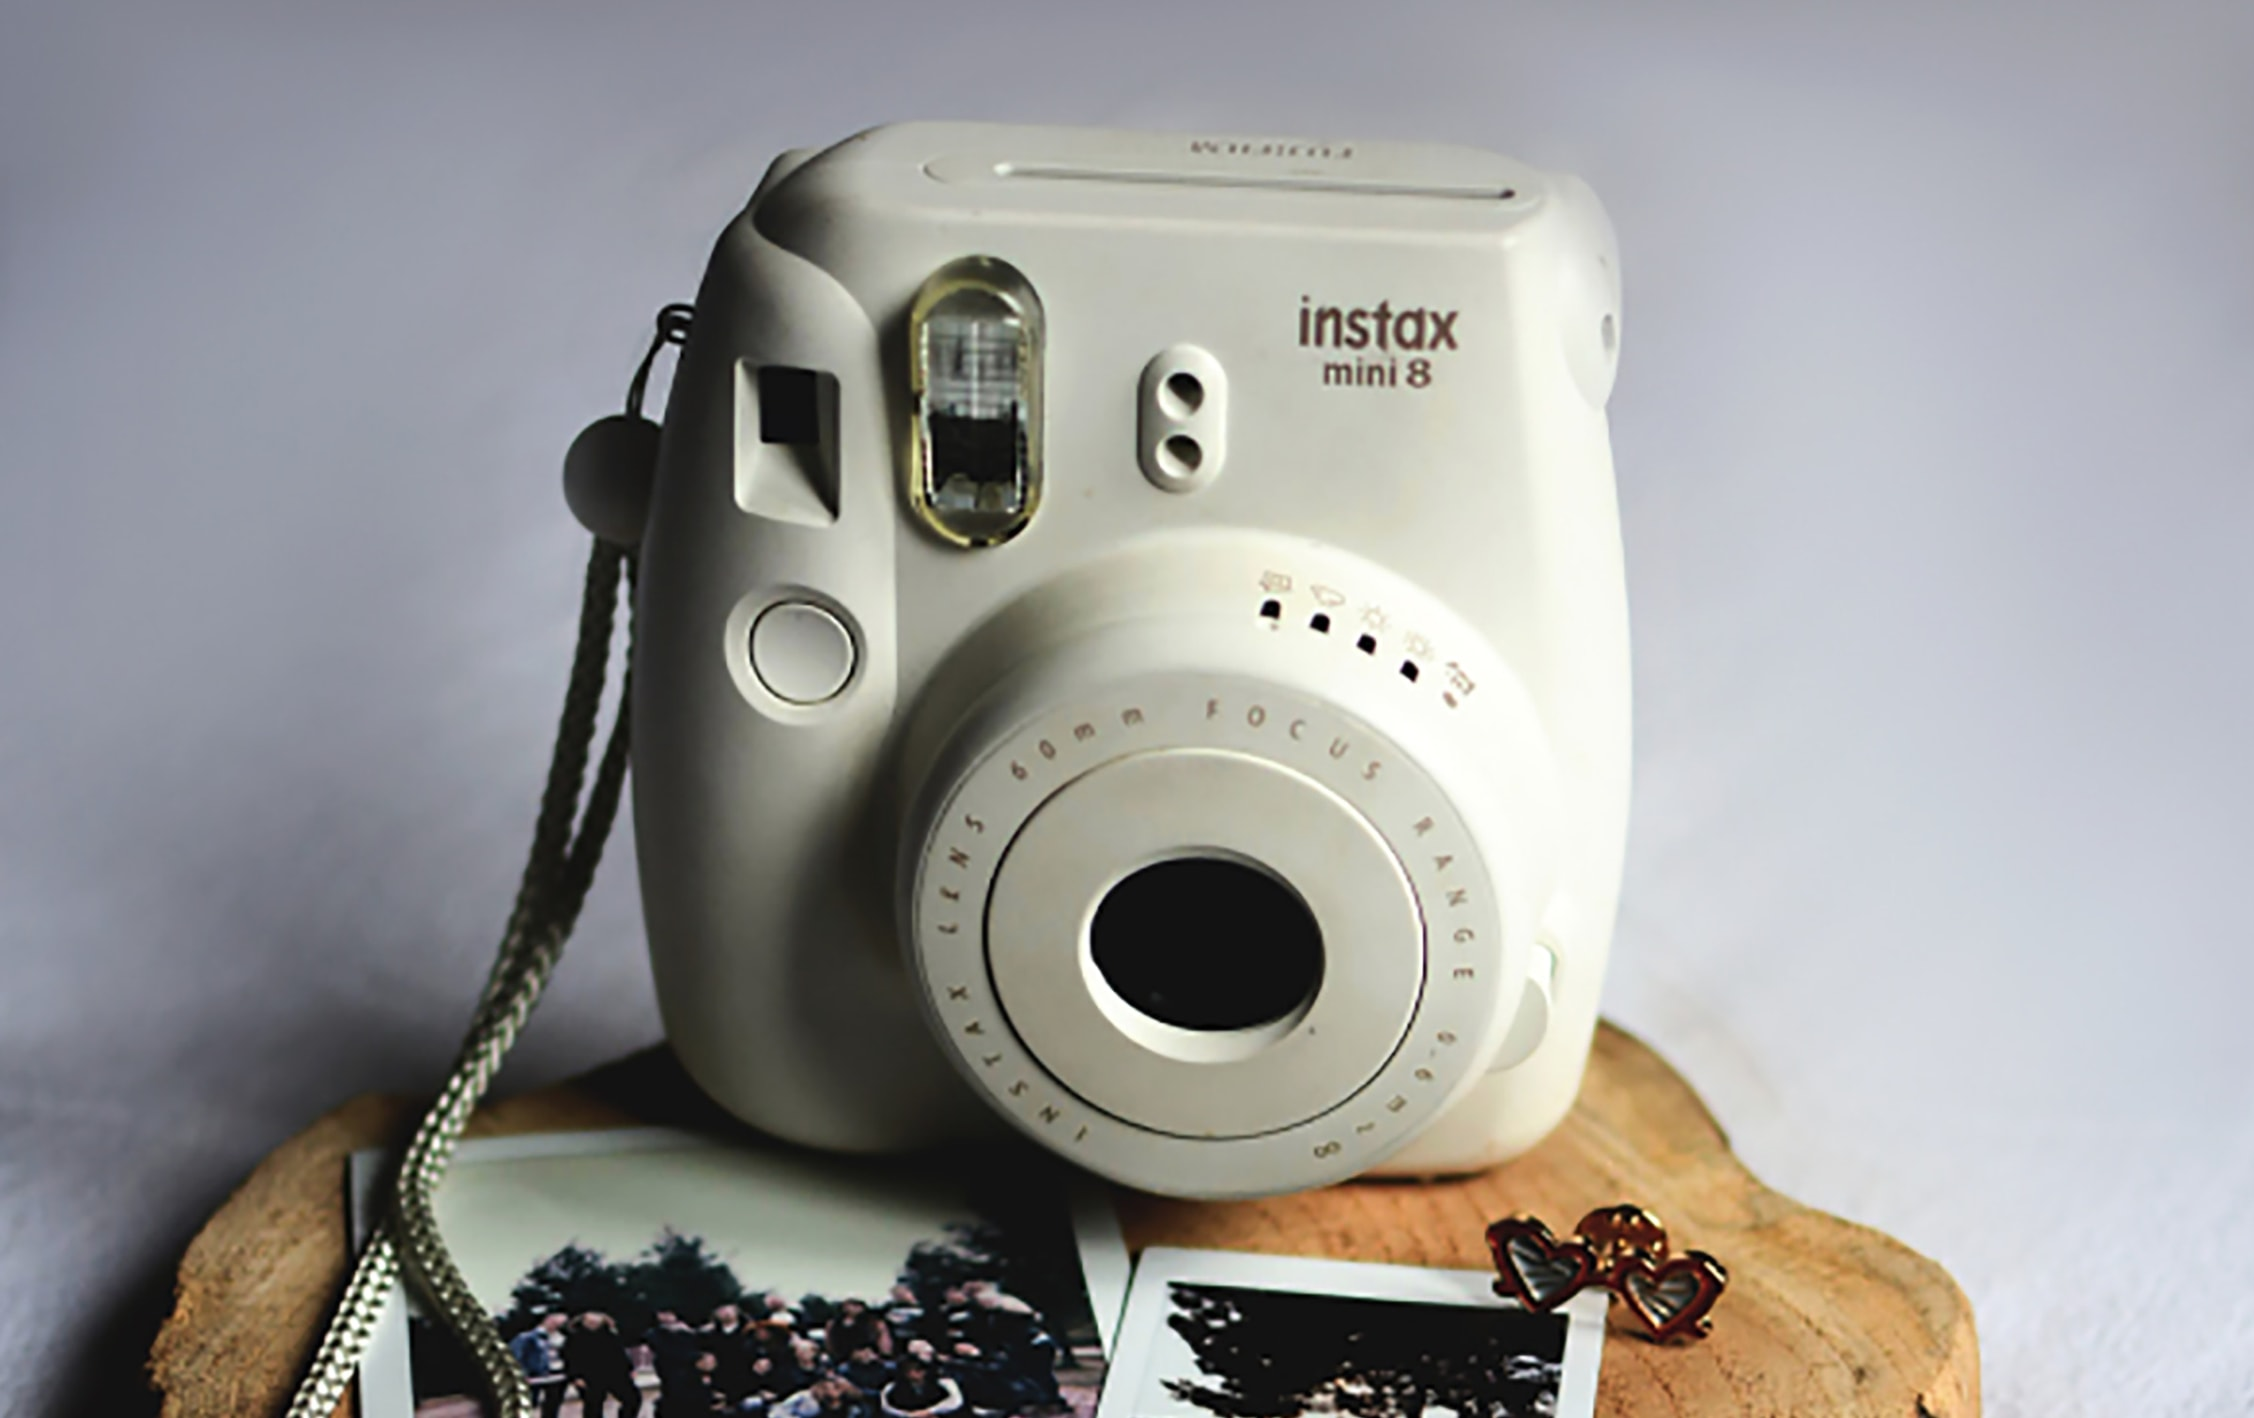 Fujifilm Instax Mini 9 for weddings and guest books